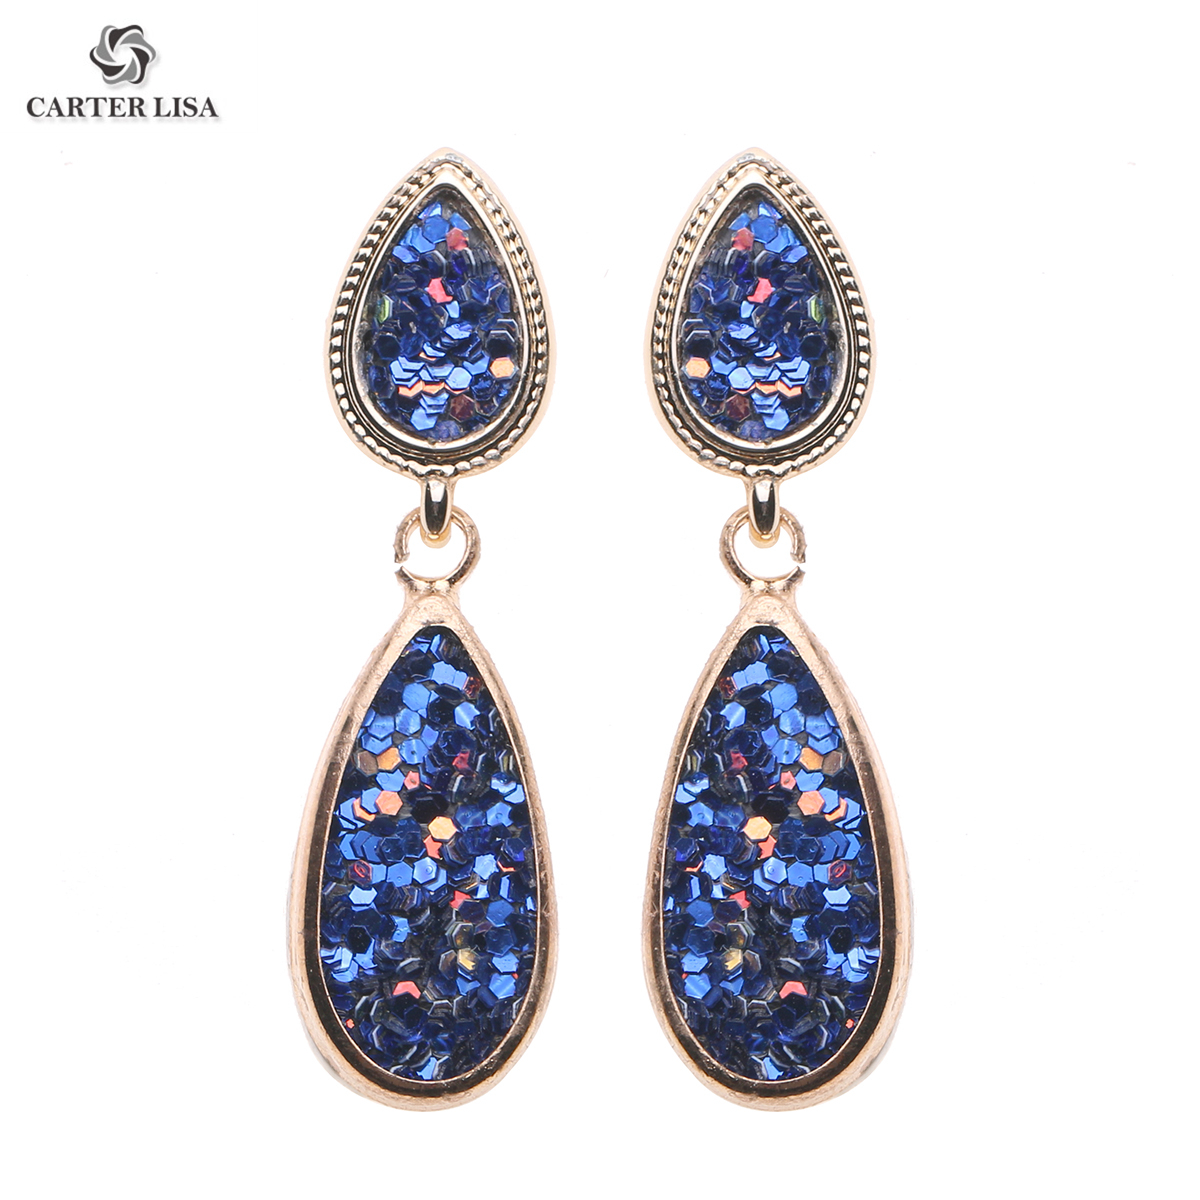 CARTER LISA 2019 Fashion Alloy Long Earrings 2019 For Women Femme  Handmade Colorful Stud Pendant Drop Dangle Earrings HDEA-089